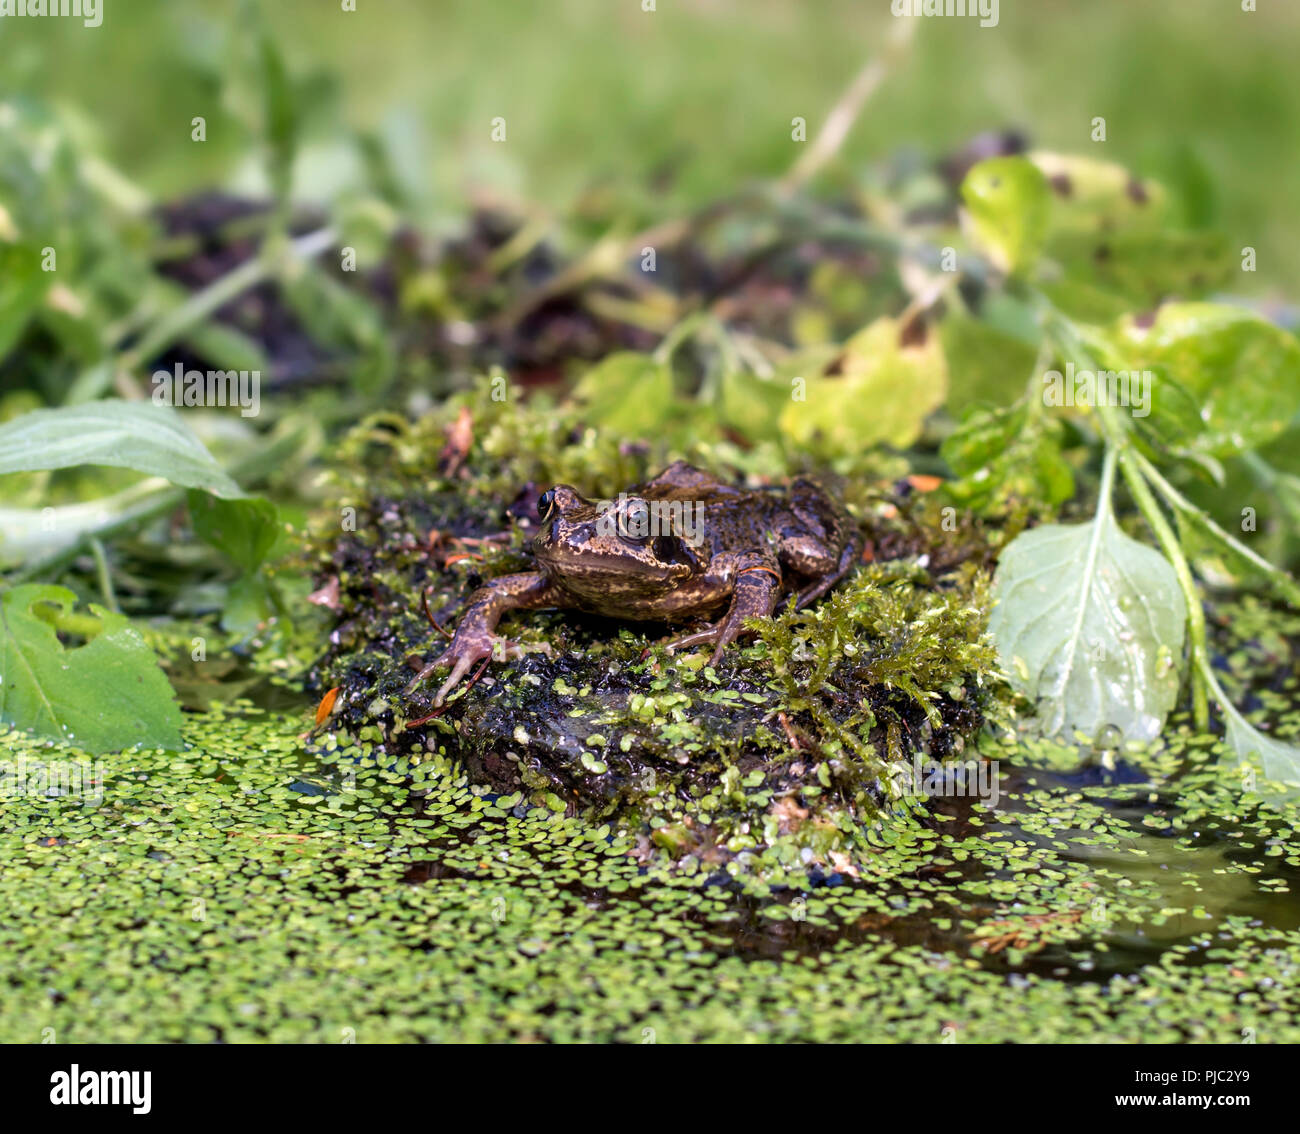 Eye level, face on portrait of European common frog sitting on rock surrounded by water plants. - Stock Image